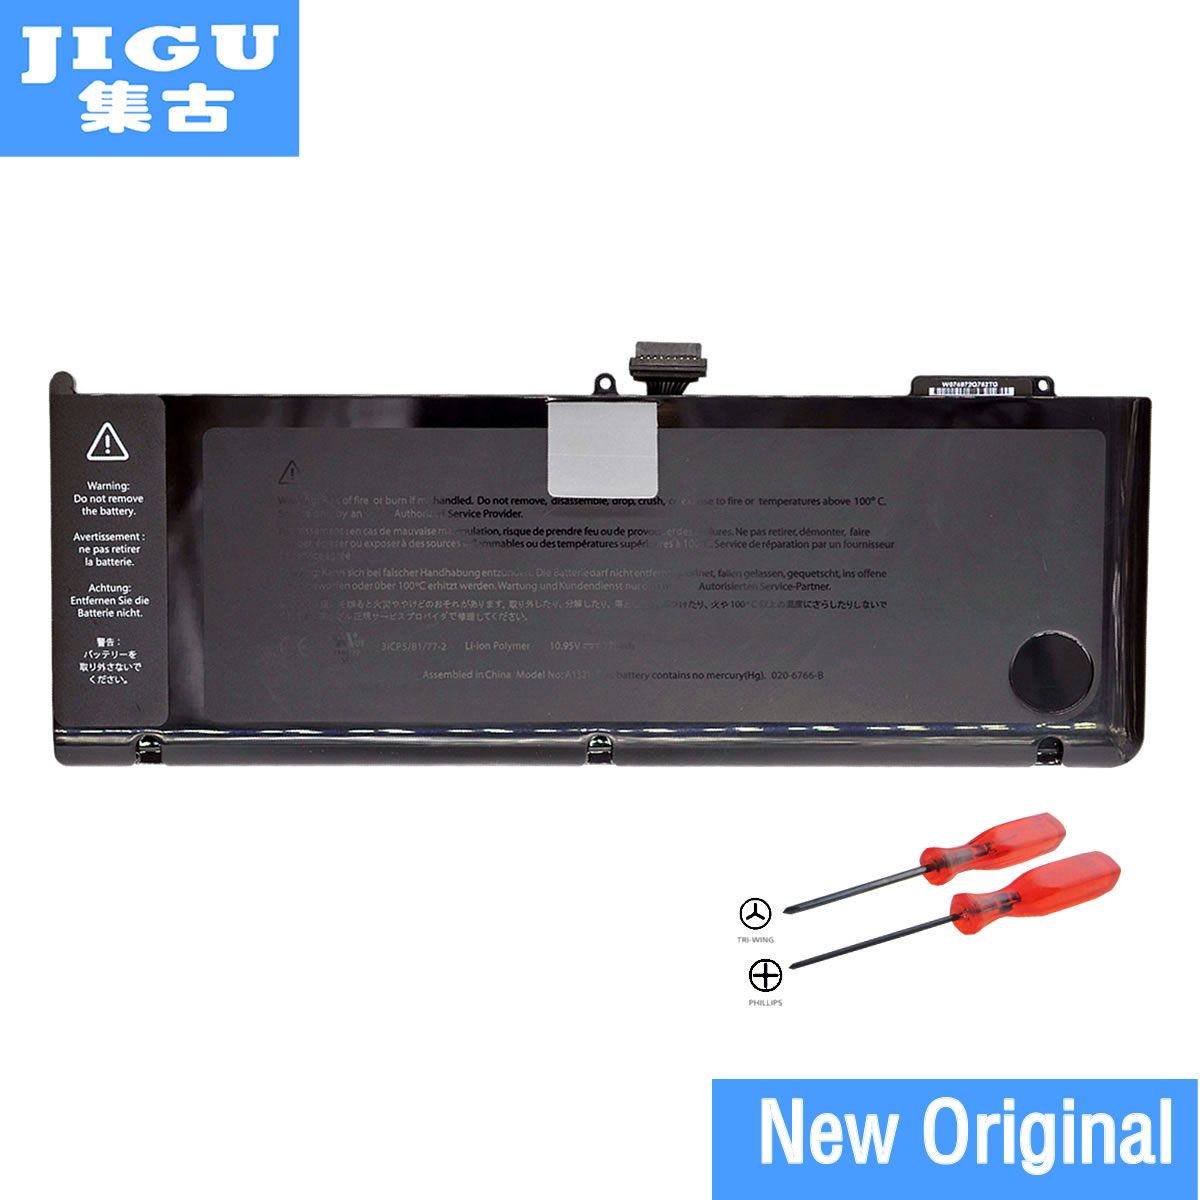 JIGU A1321 Original Laptop Battery For Apple MacBook Pro 15 A1286 year 2009 2010 MB985 MC986 MC118 MC372 MC373 MC371 original a1706 a1708 lcd back cover for macbook pro13 2016 a1706 a1708 laptop replacement